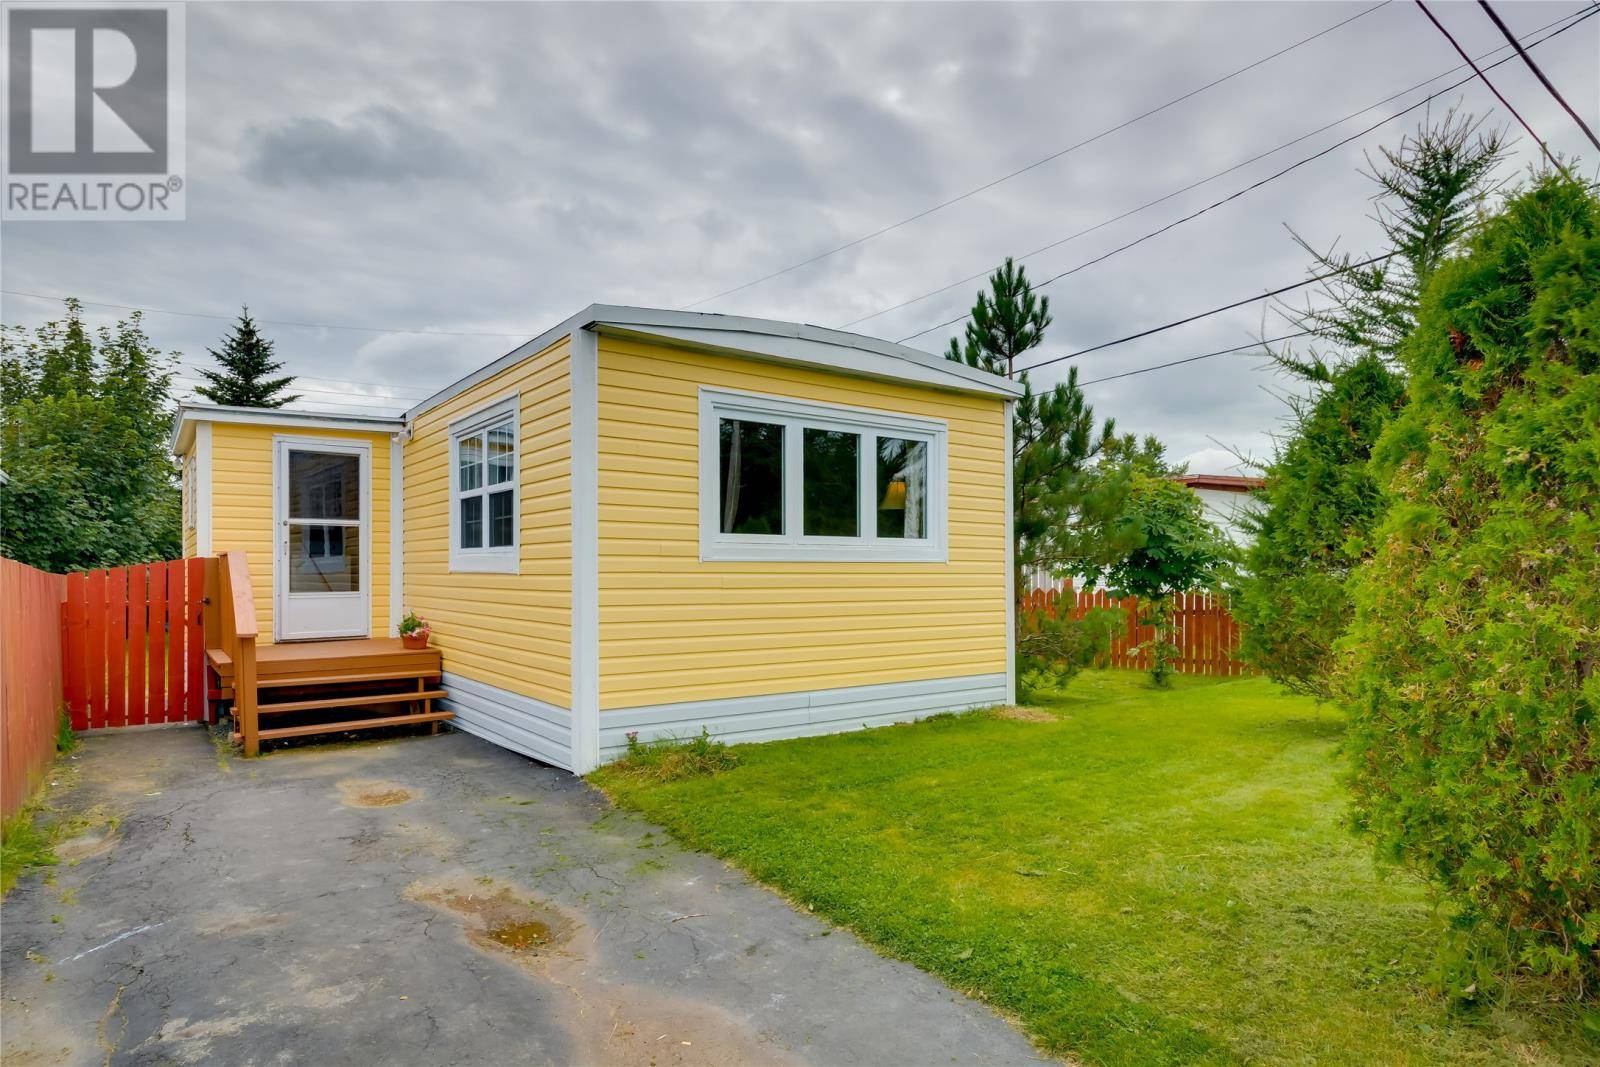 Residential property for sale at 50 Meadowbrook Dr St. Johns Newfoundland - MLS: 1209340